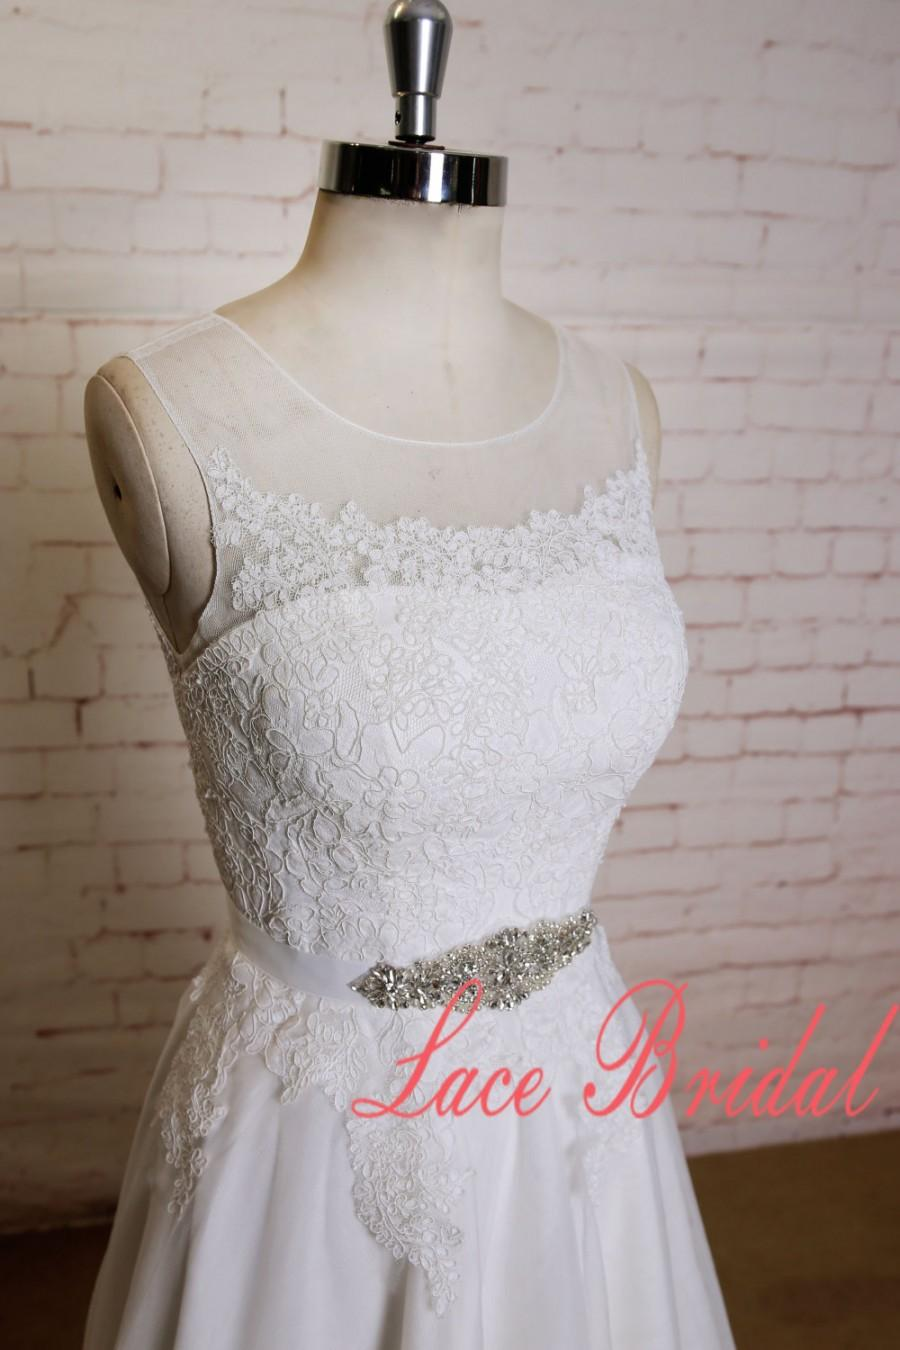 Wedding - Ivory Lace Bodice Wedding Dress with Illusion Neckline Sheer Back Bridal Gown with Beaded Belt A-line Style Wedding Dress with Chapel Train